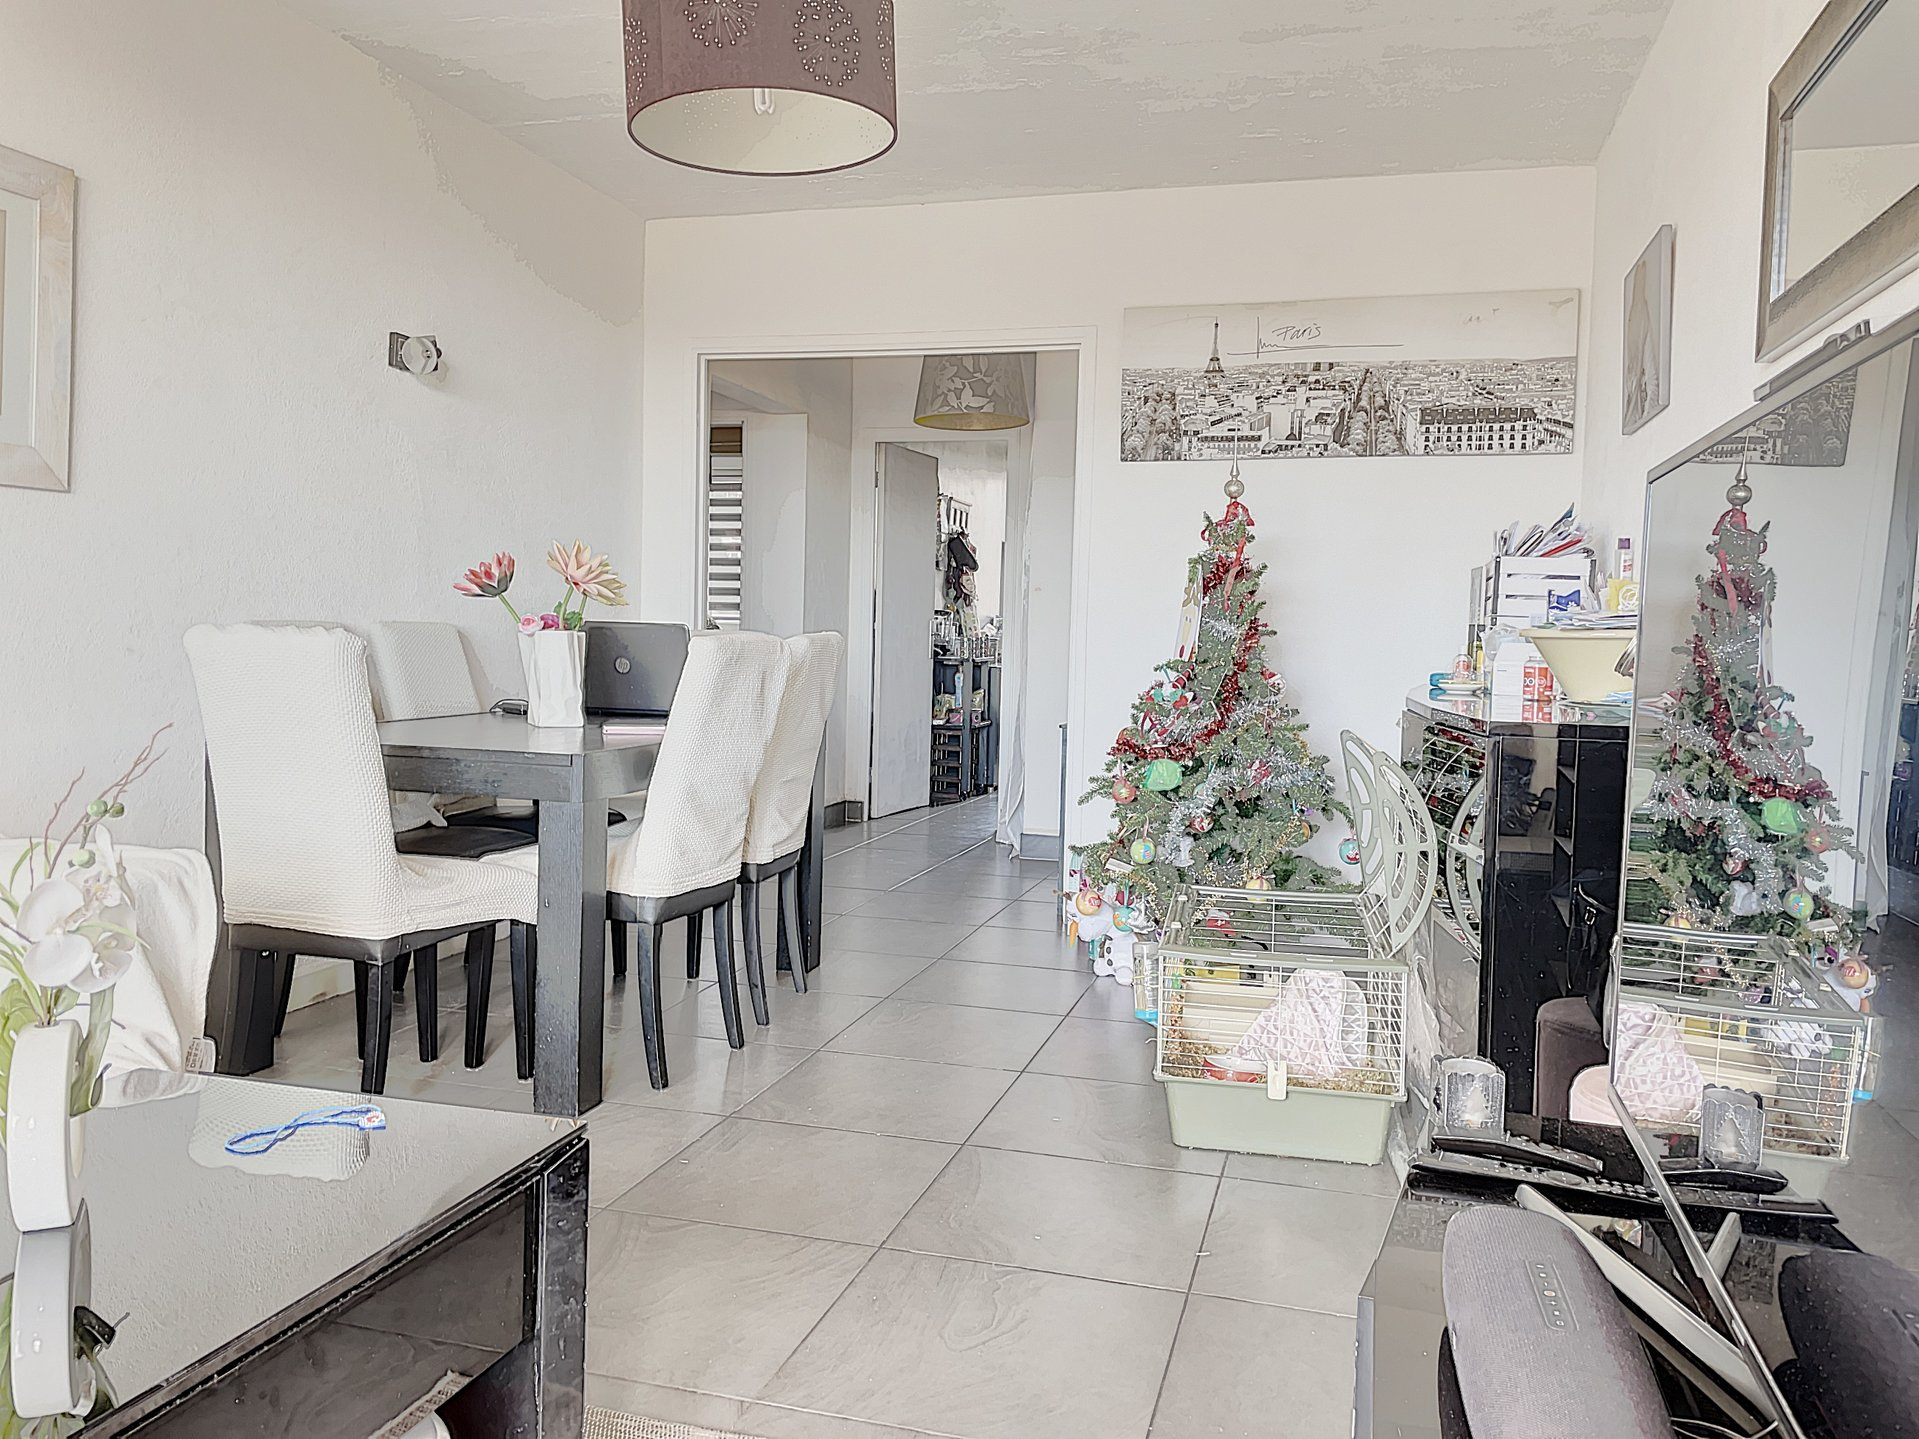 CAGNES SUR MER (06800) - Appartements 3P - TERRASSE - PARKING